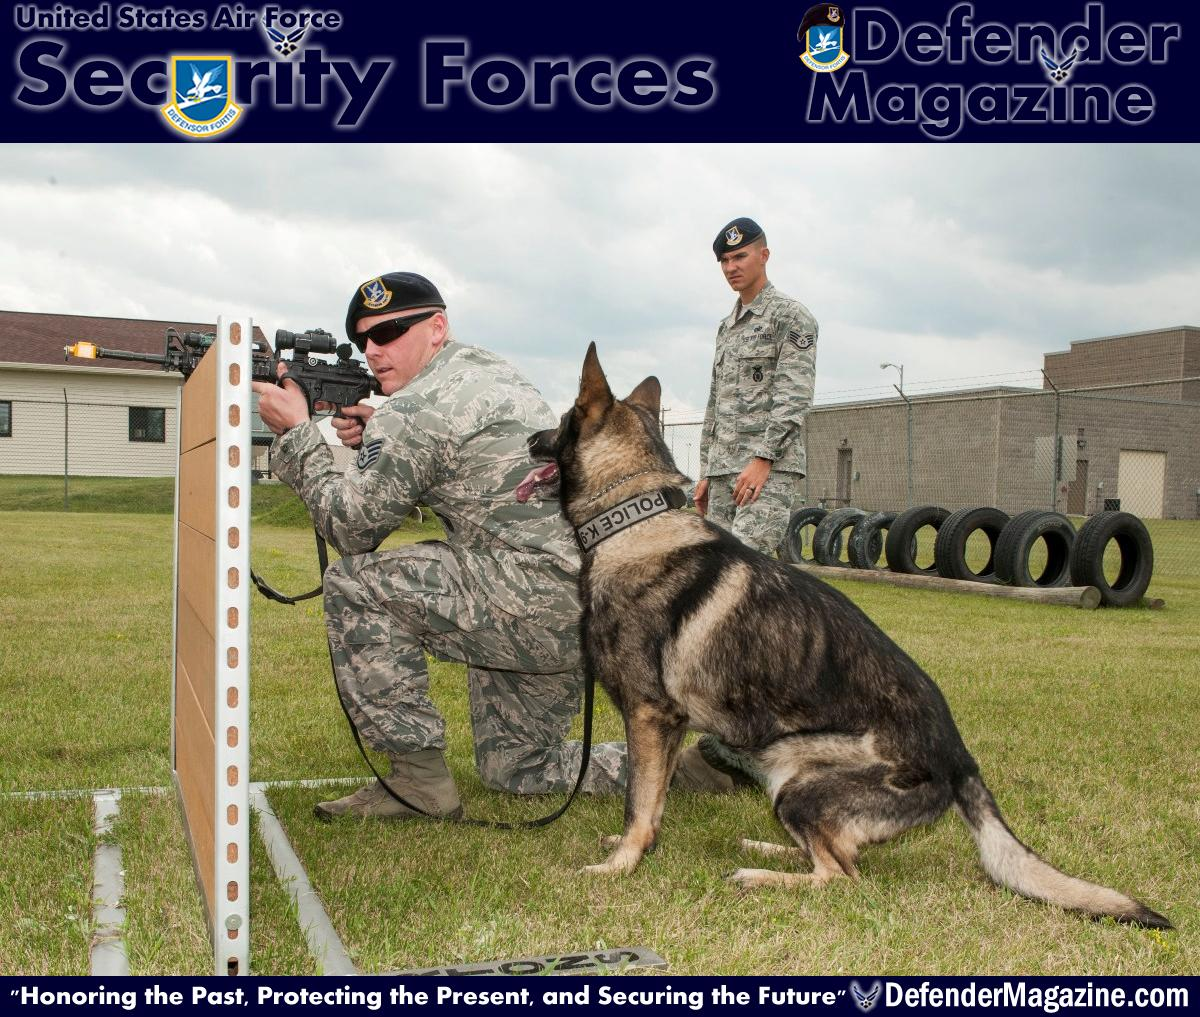 From pup to Alpha Staff Sgt. Tim Glover, 5th Security Forces Squadron MWD handler, gives his MWD Roko the command 'stay,' as Staff Sgt. Christopher Averill, 5th SFS MWD trainer, observes weapons training on Minot Air Force Base, N.D., July 29, 2014. During training, Averill watched as Glover used blank rounds to test Roko's reaction to the sound of gunfire and assessed Roko's ability to obey commands in a stressful environment. (U.S. Air Force photo/Senior Airman Stephanie Morris)